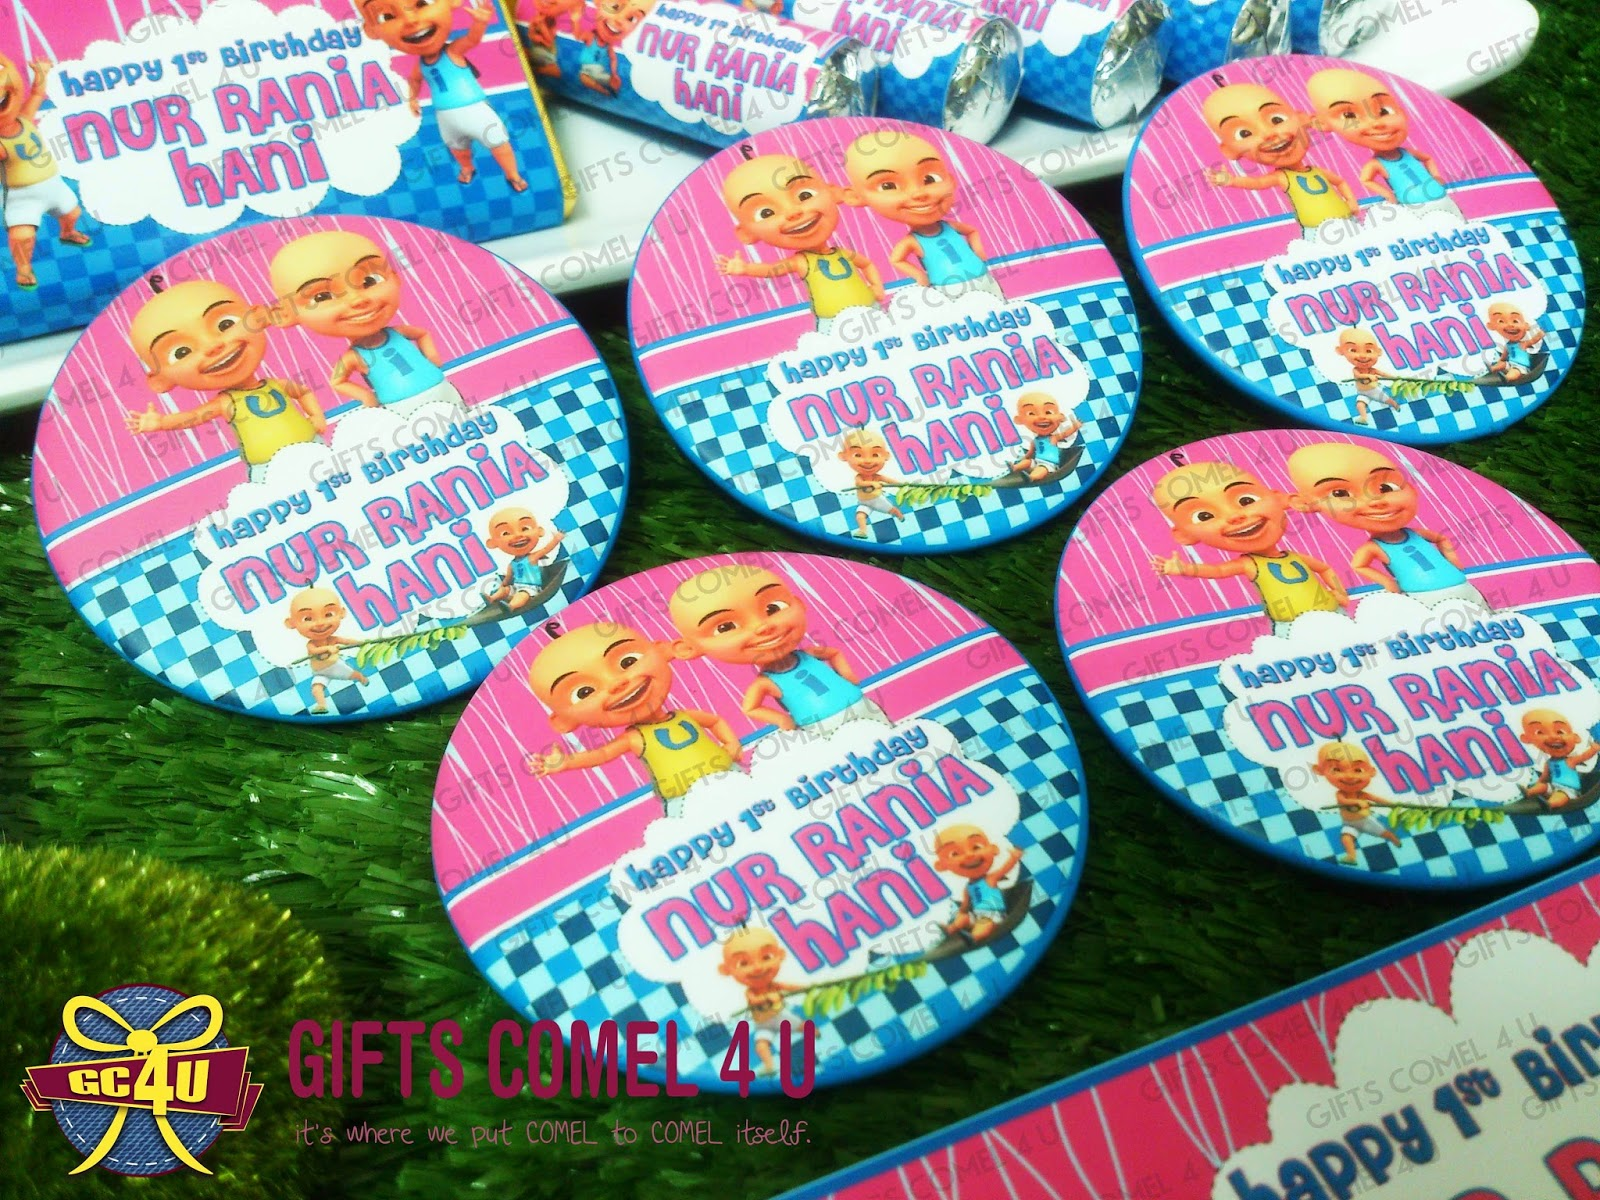 Gifts comel 4 u ordered by rasyidah binti rahit upin ipin upin ipin bluepink theme button badge 58cm stopboris Image collections